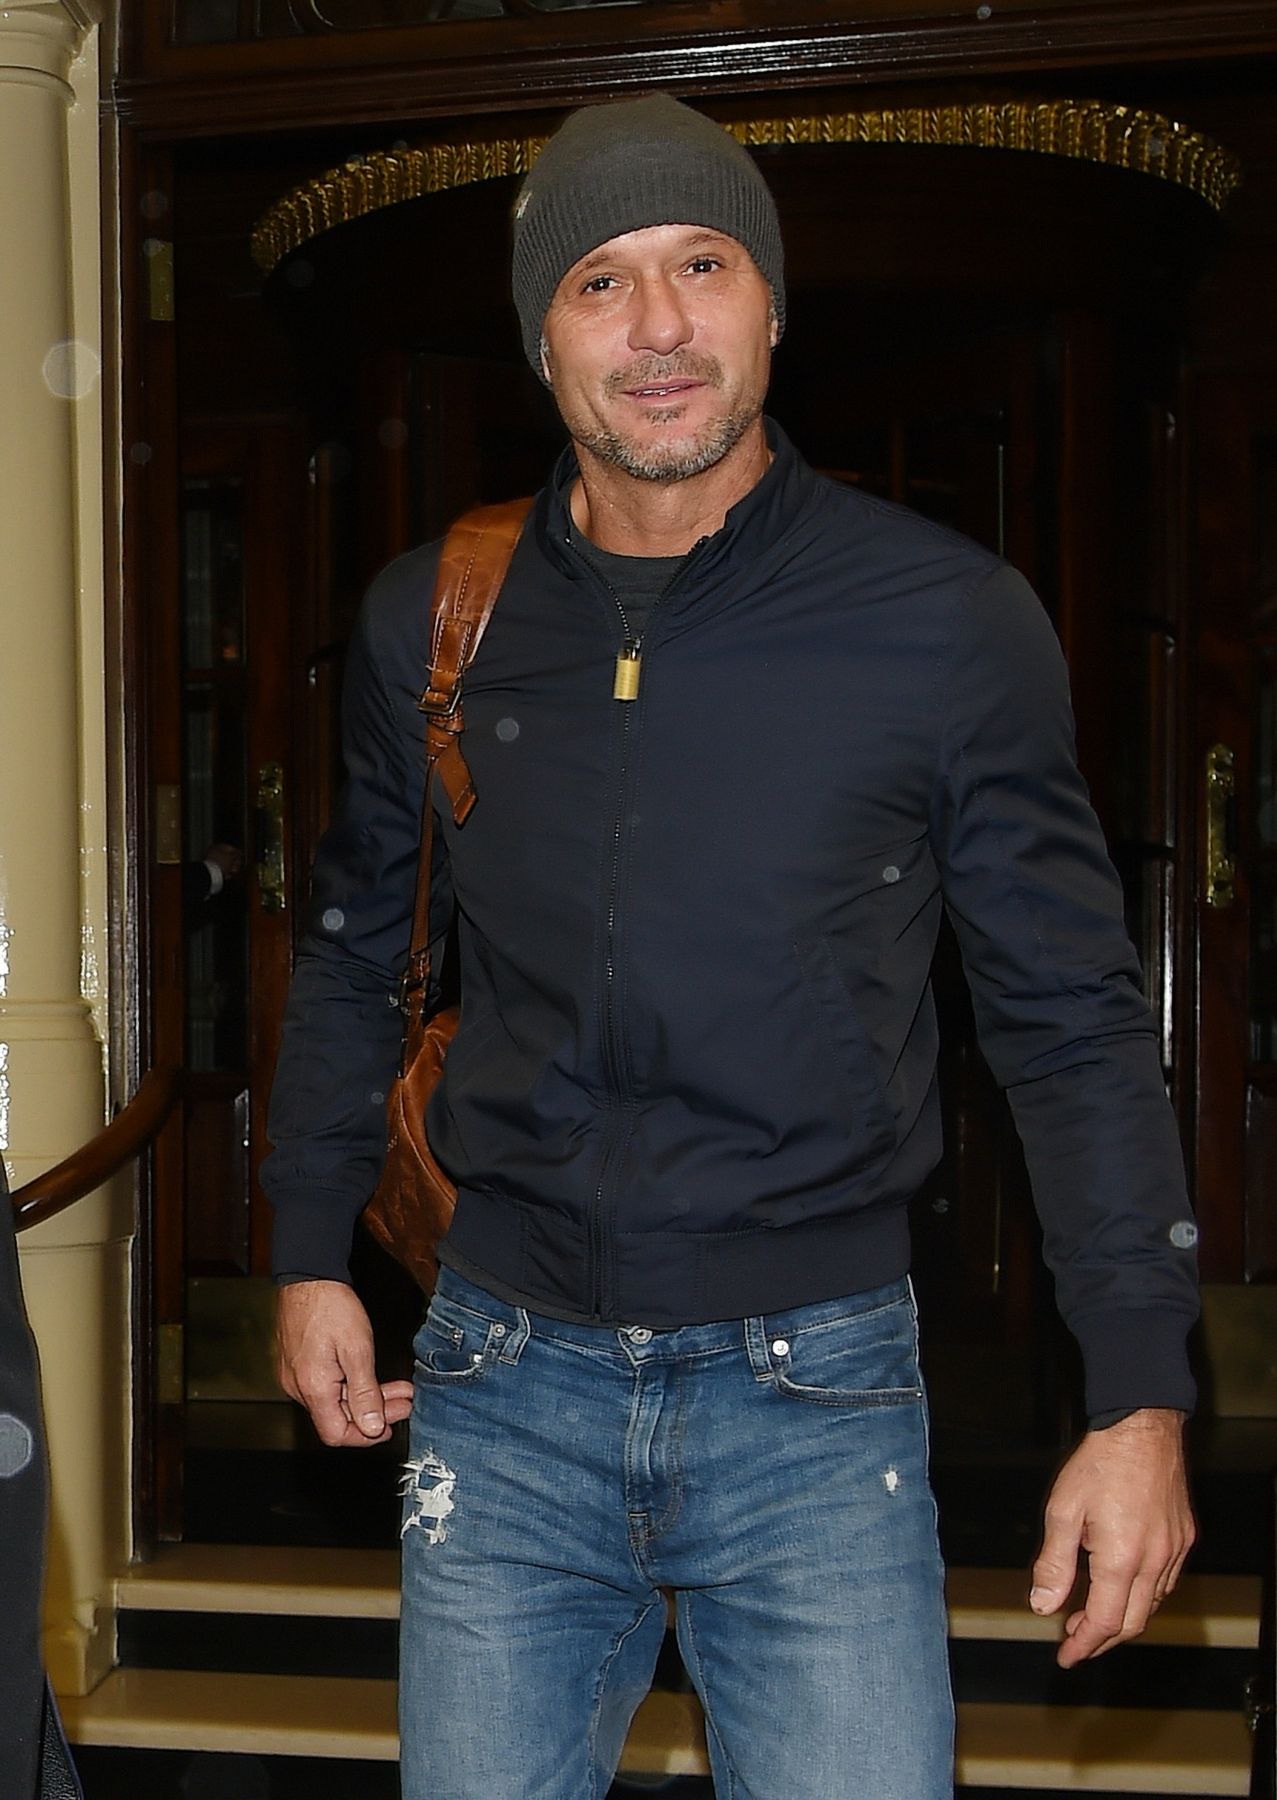 EXCLUSIVE: Tim McGraw And Wife Faith Hill Seen in Dublin